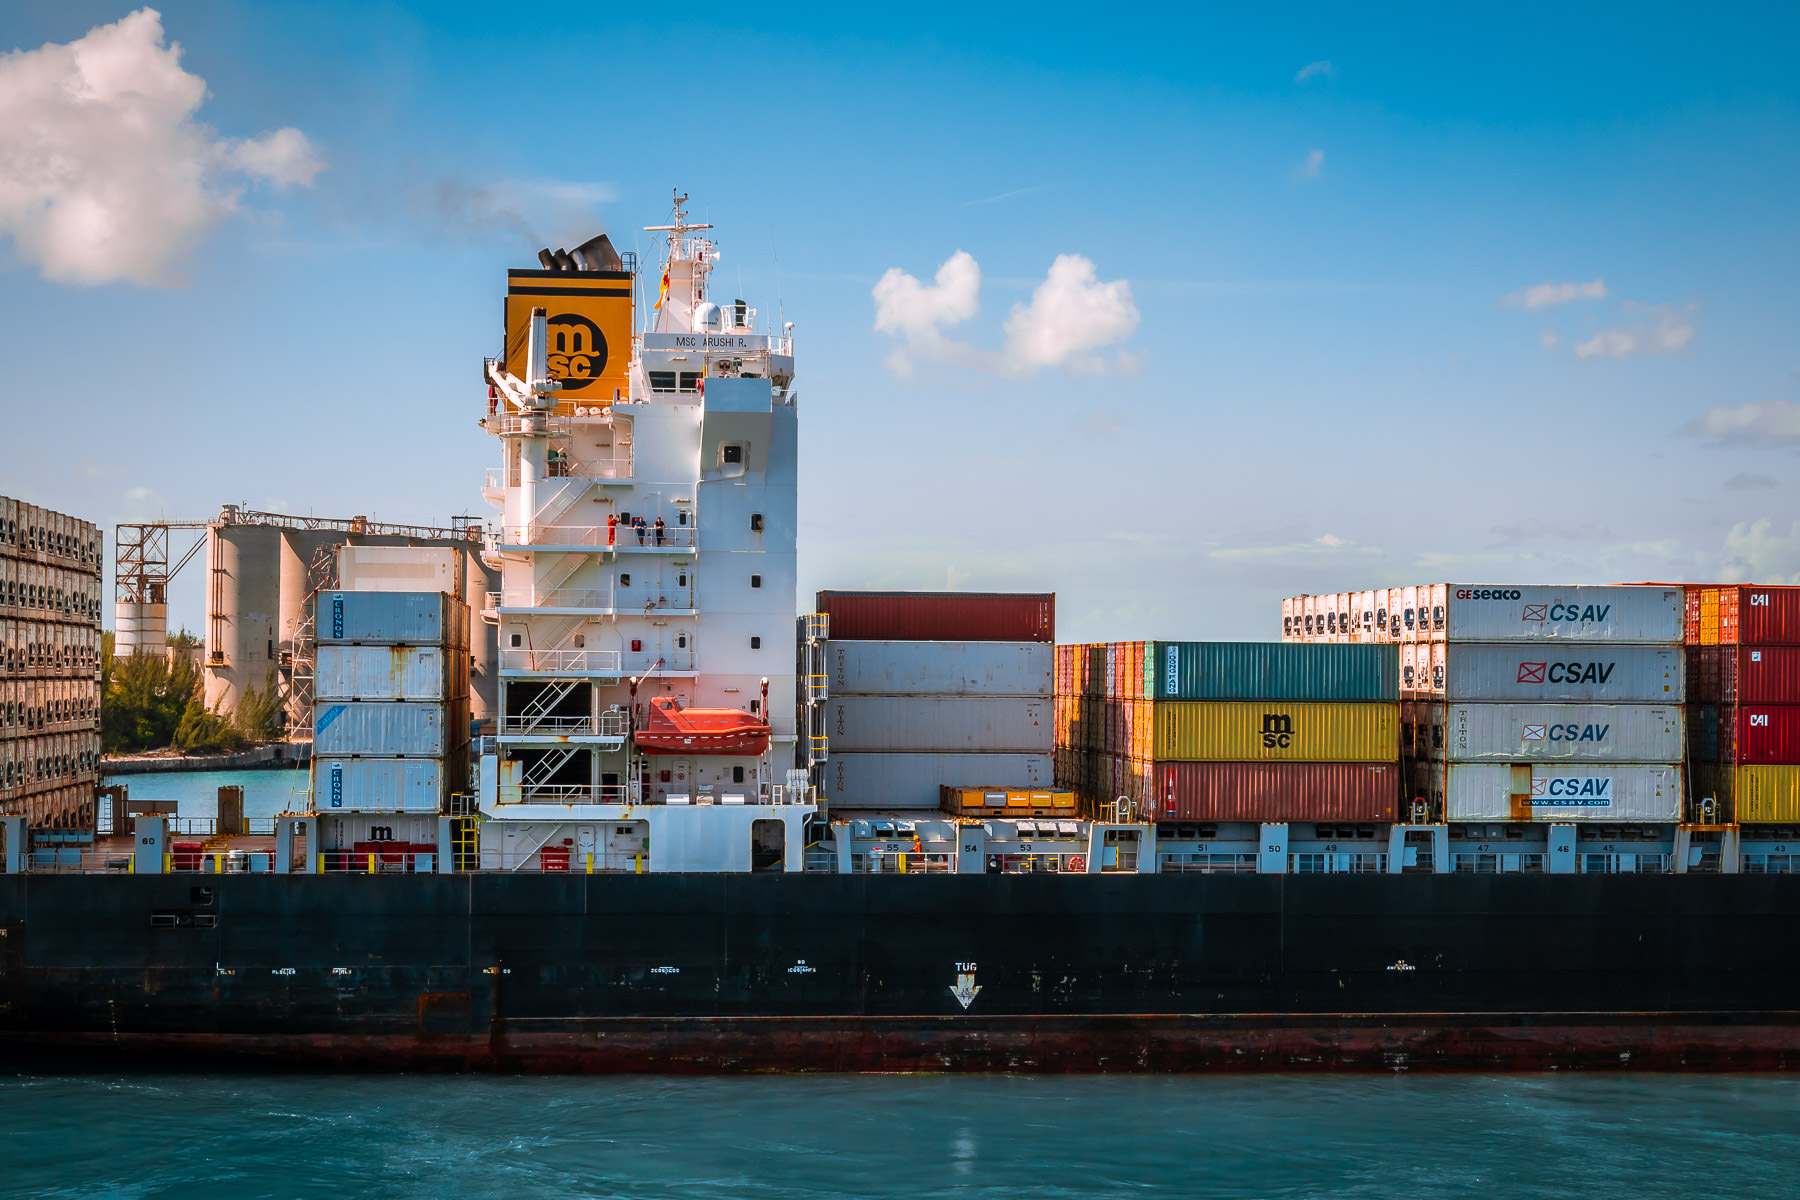 The container shipMSC Arushi R.sails into Freeport, Bahamas.